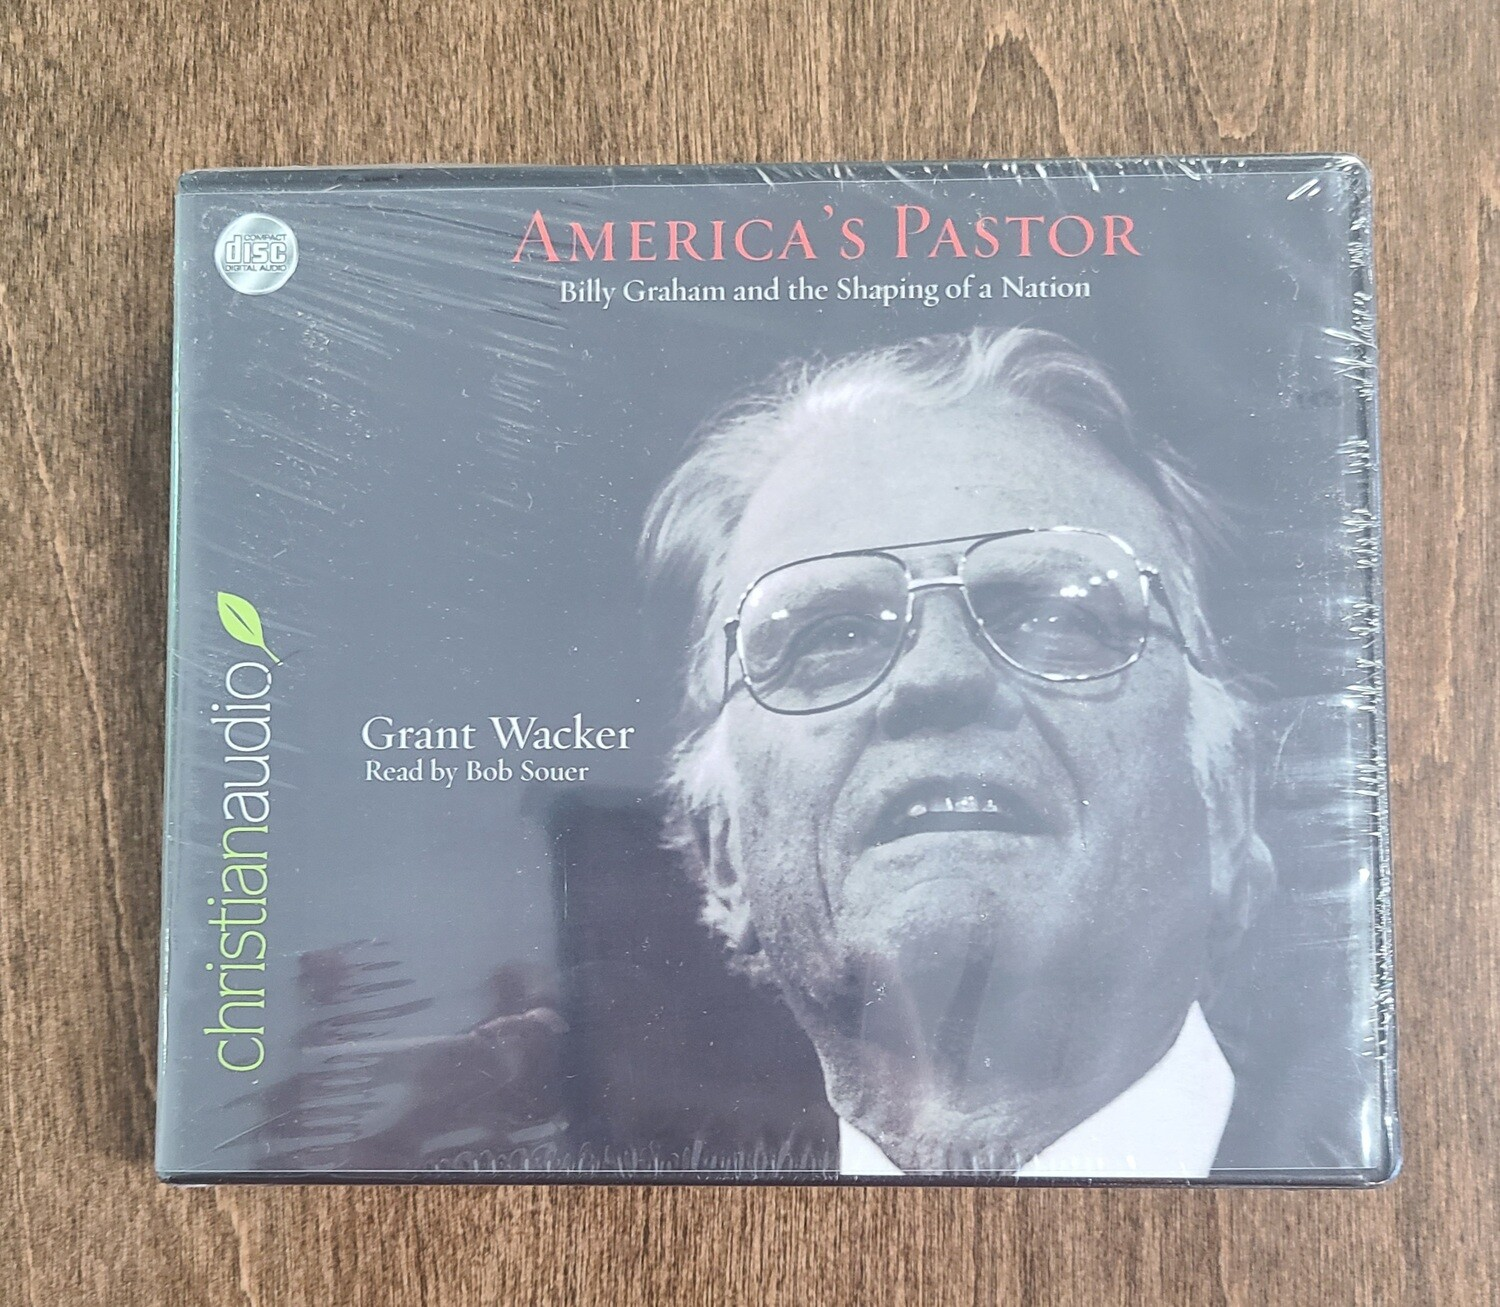 America's Pastor: Billy Graham and the Shaping of a Nation by Grant Wacker and Bob Souer